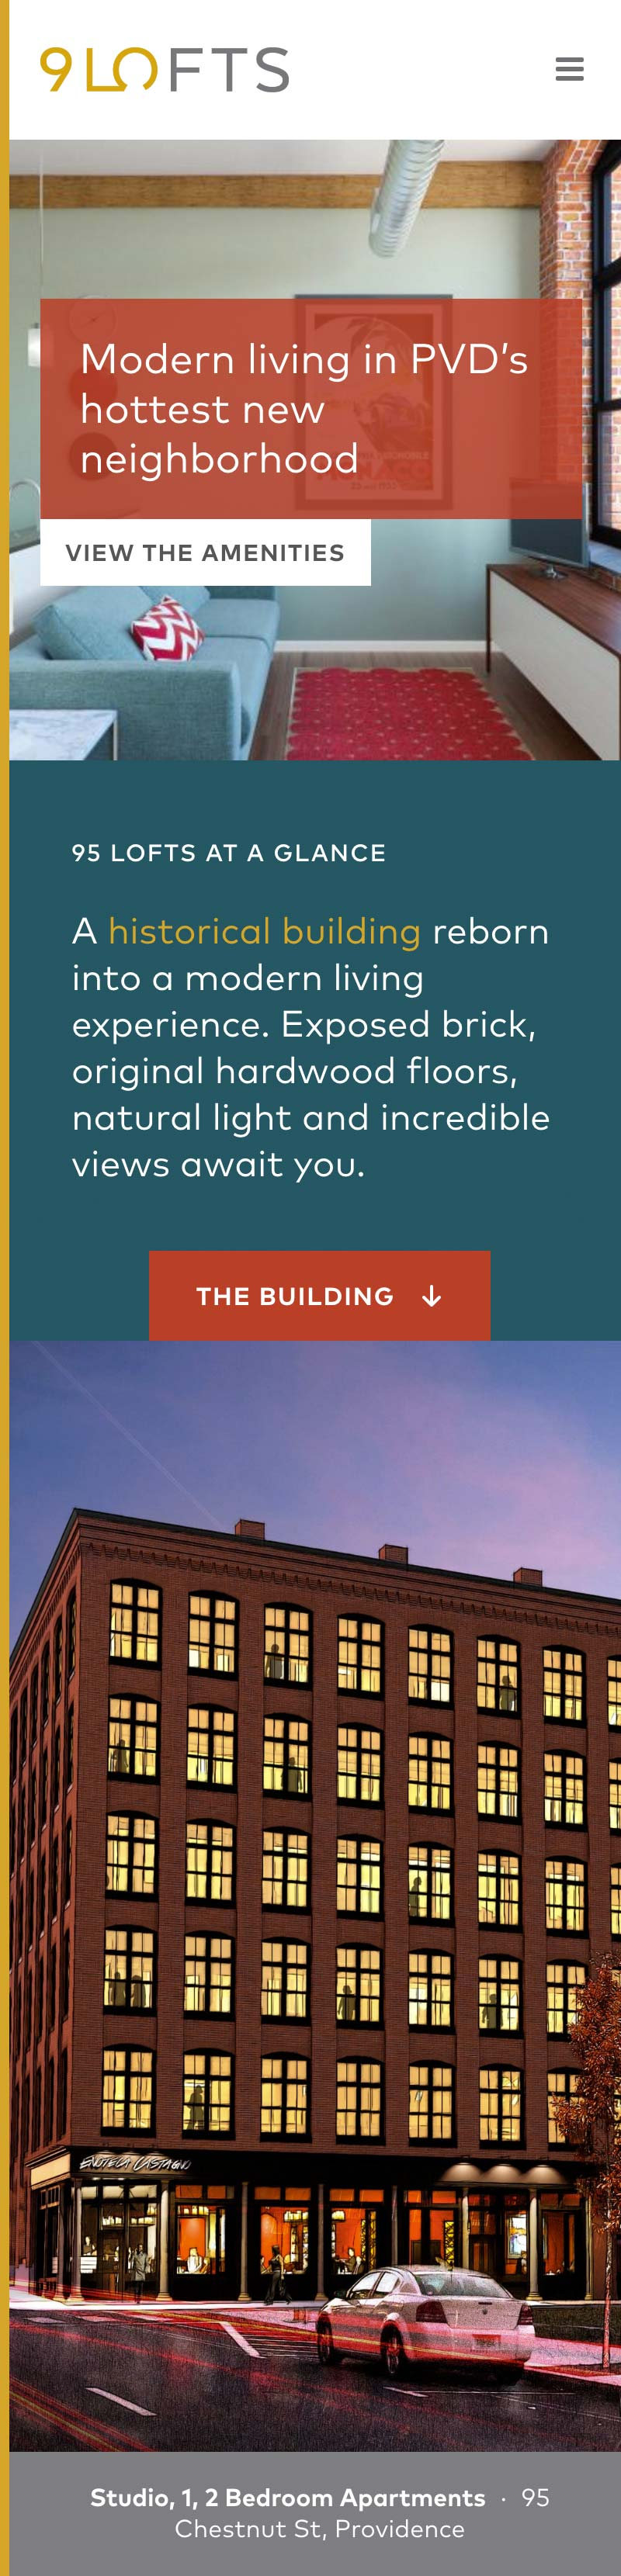 web design and development for Providence real estate company